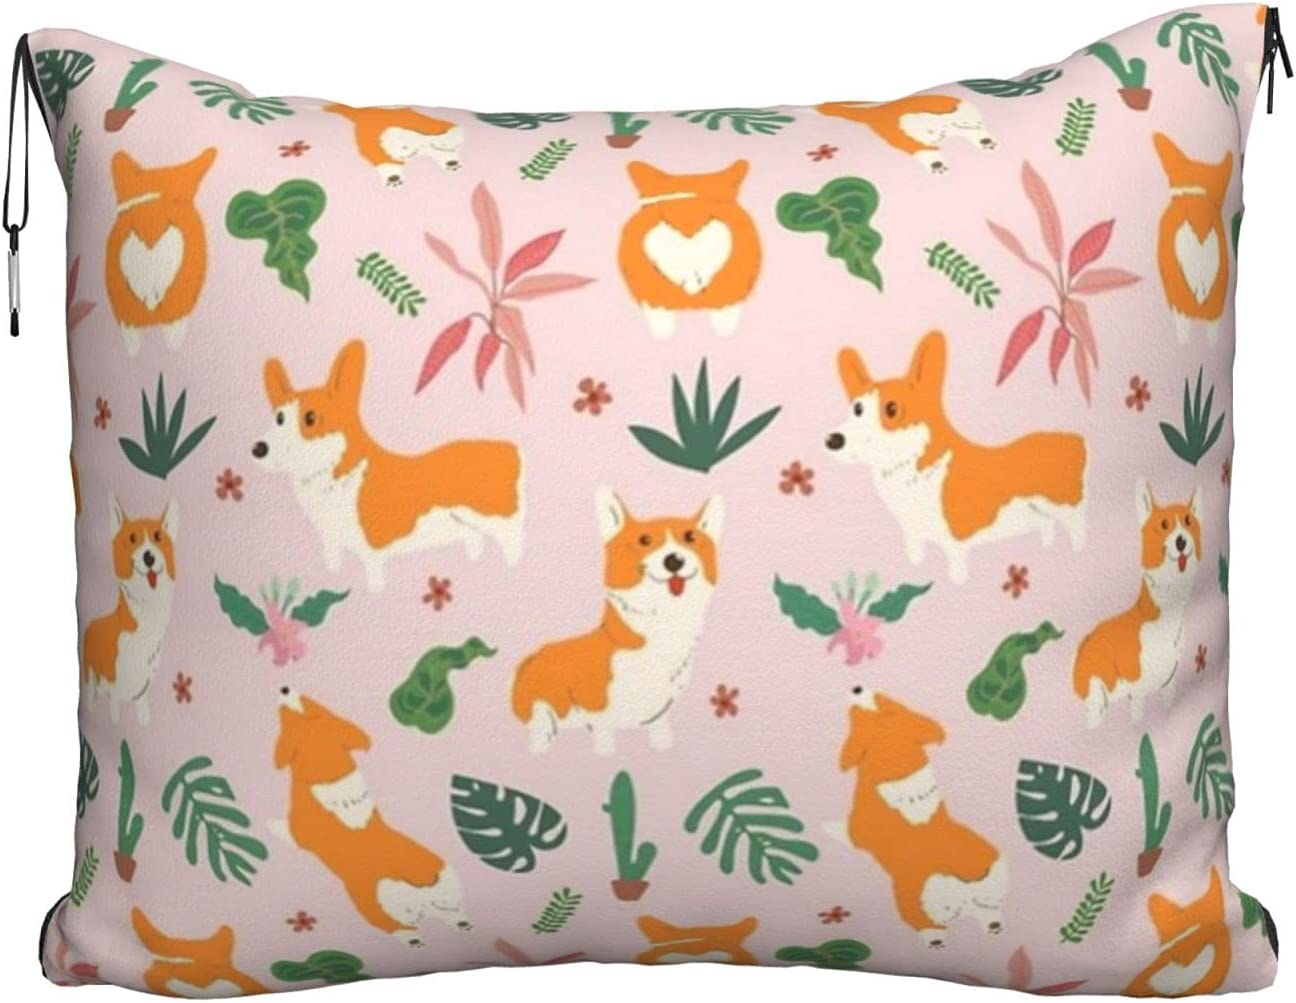 Small Fresno Mall Size Corgi Printed Travel Discount is also underway 2-in Soft Pillow Blanket Velvet